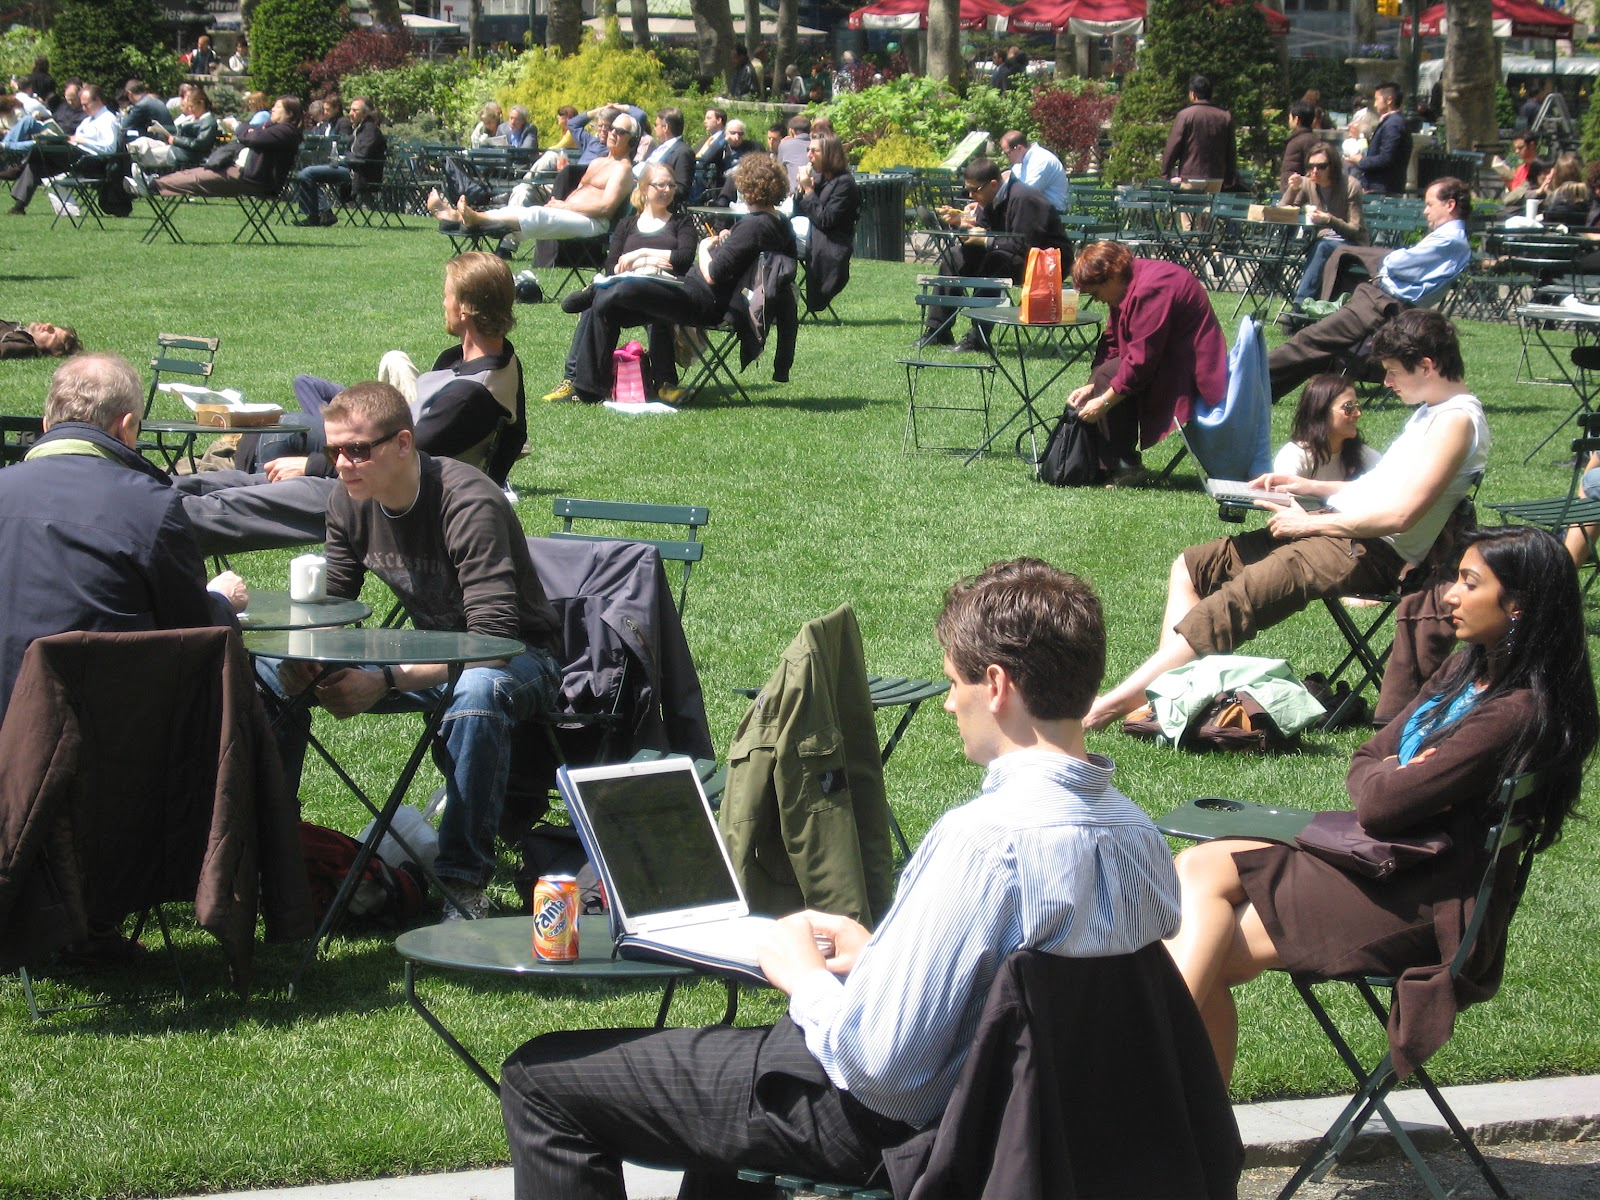 Bryant Park in New York City  has offered free wifi to the public since 2002.